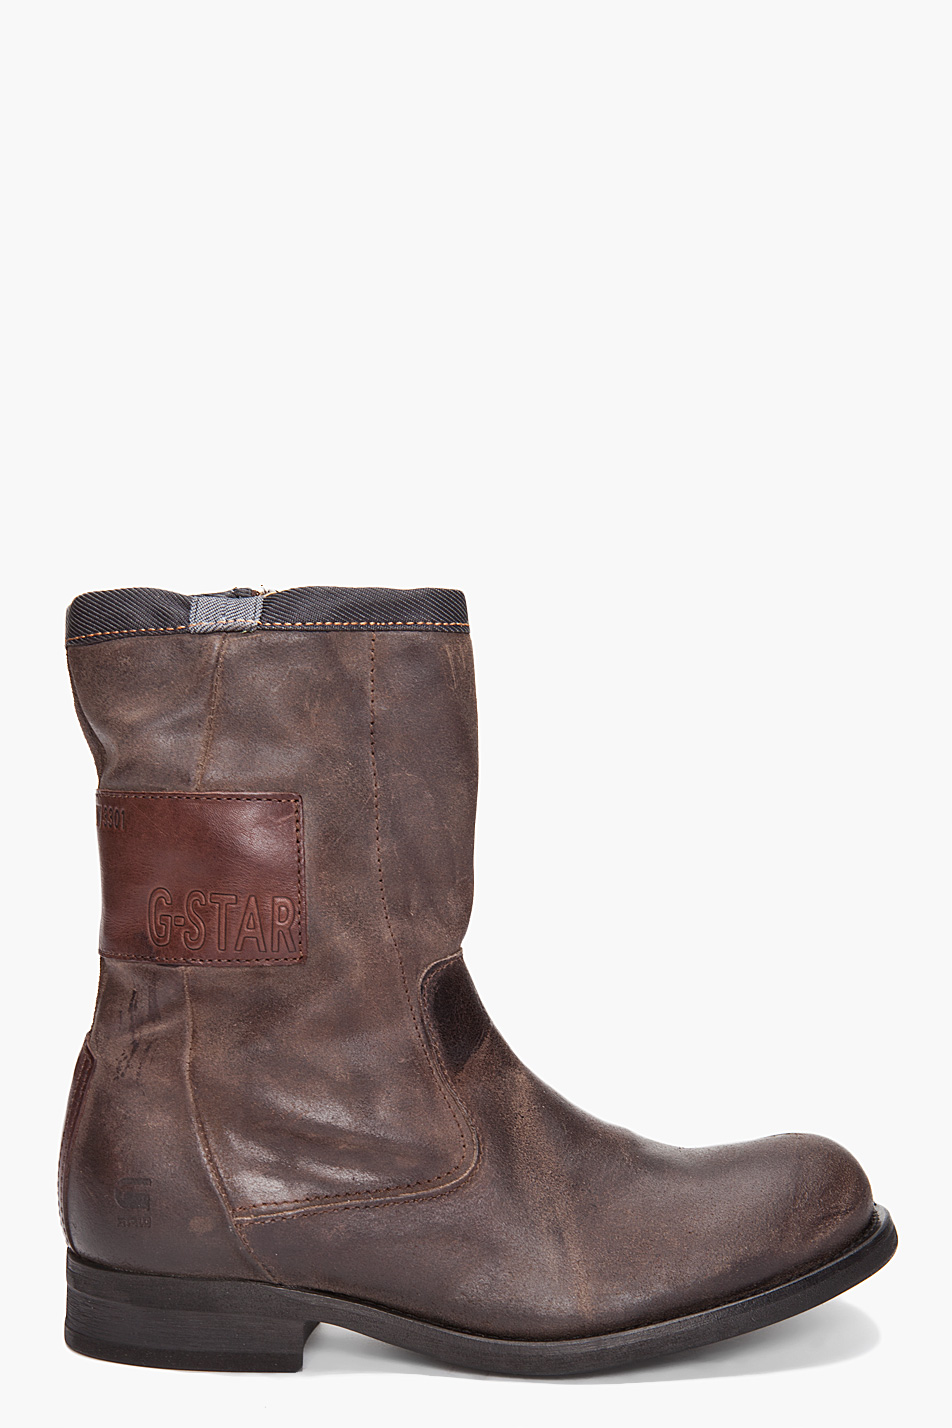 g star raw vanguard arc zip boot in brown for men lyst. Black Bedroom Furniture Sets. Home Design Ideas